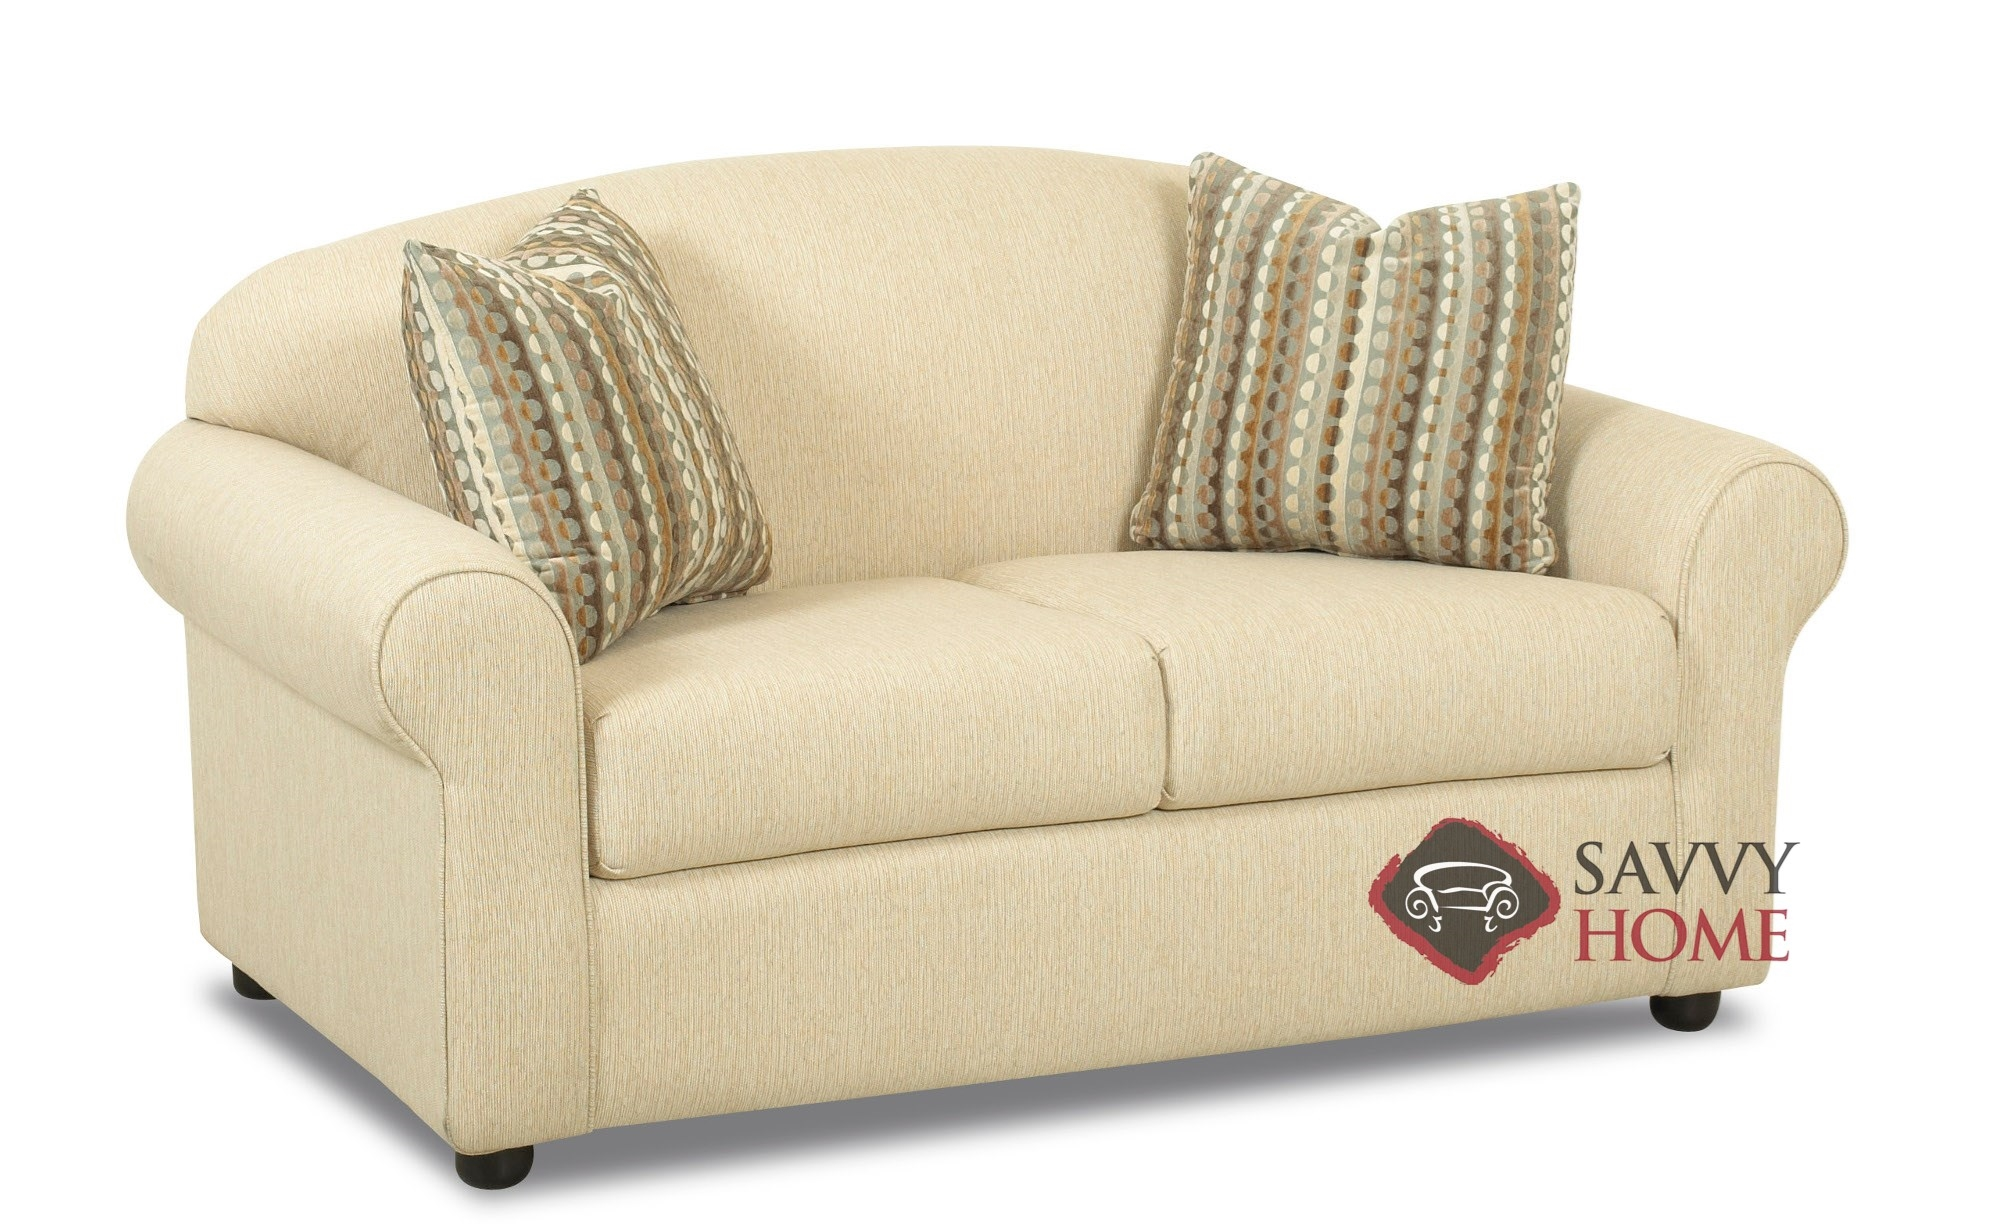 Chicago Twin Sleeper Sofa By Savvy Sideview